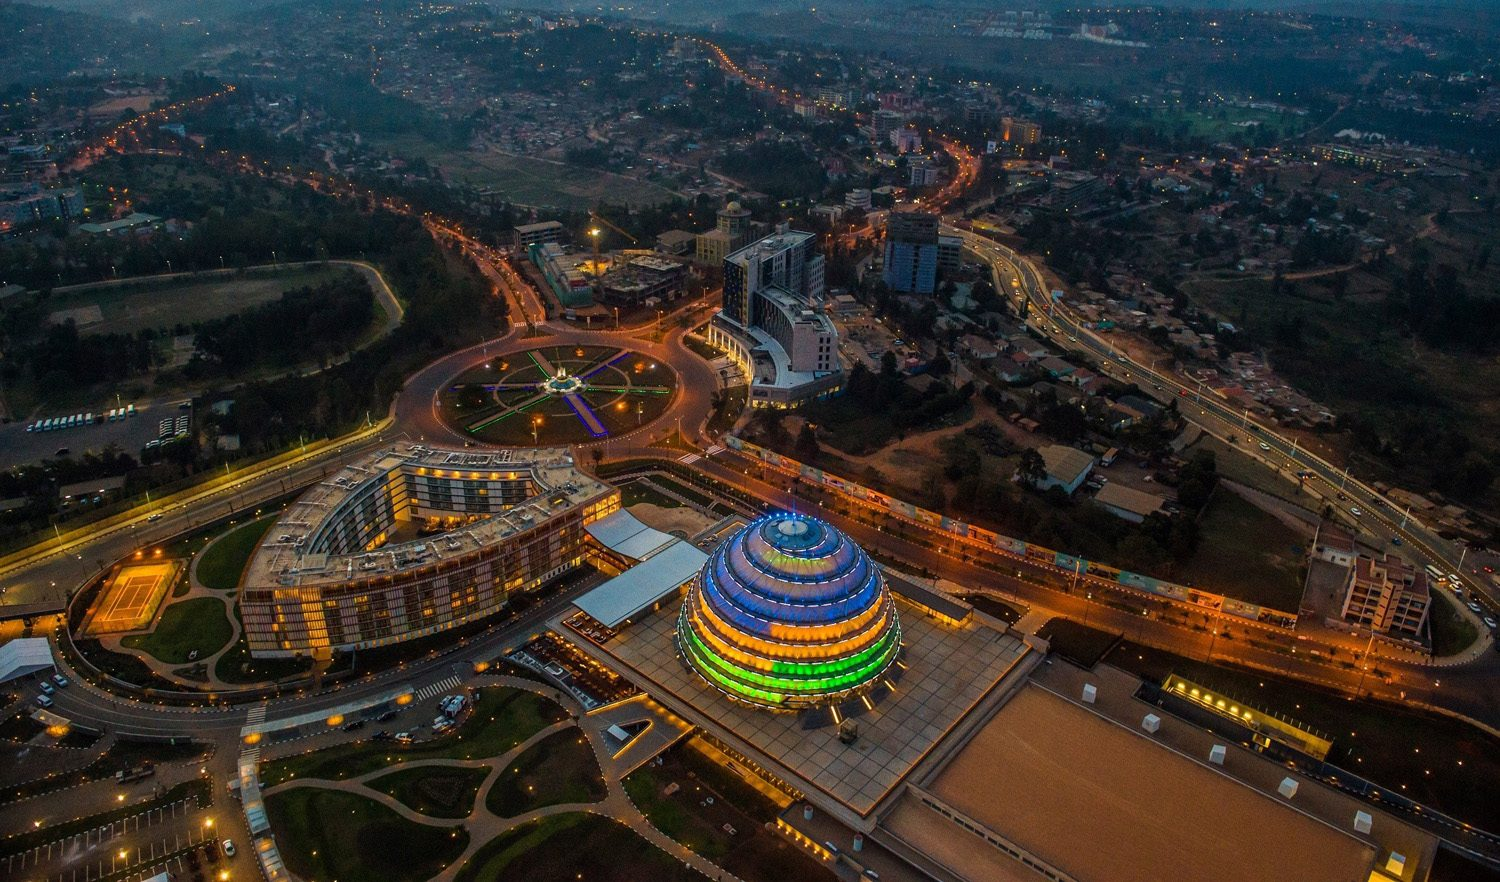 Kigali City-Land of A thousand Hills